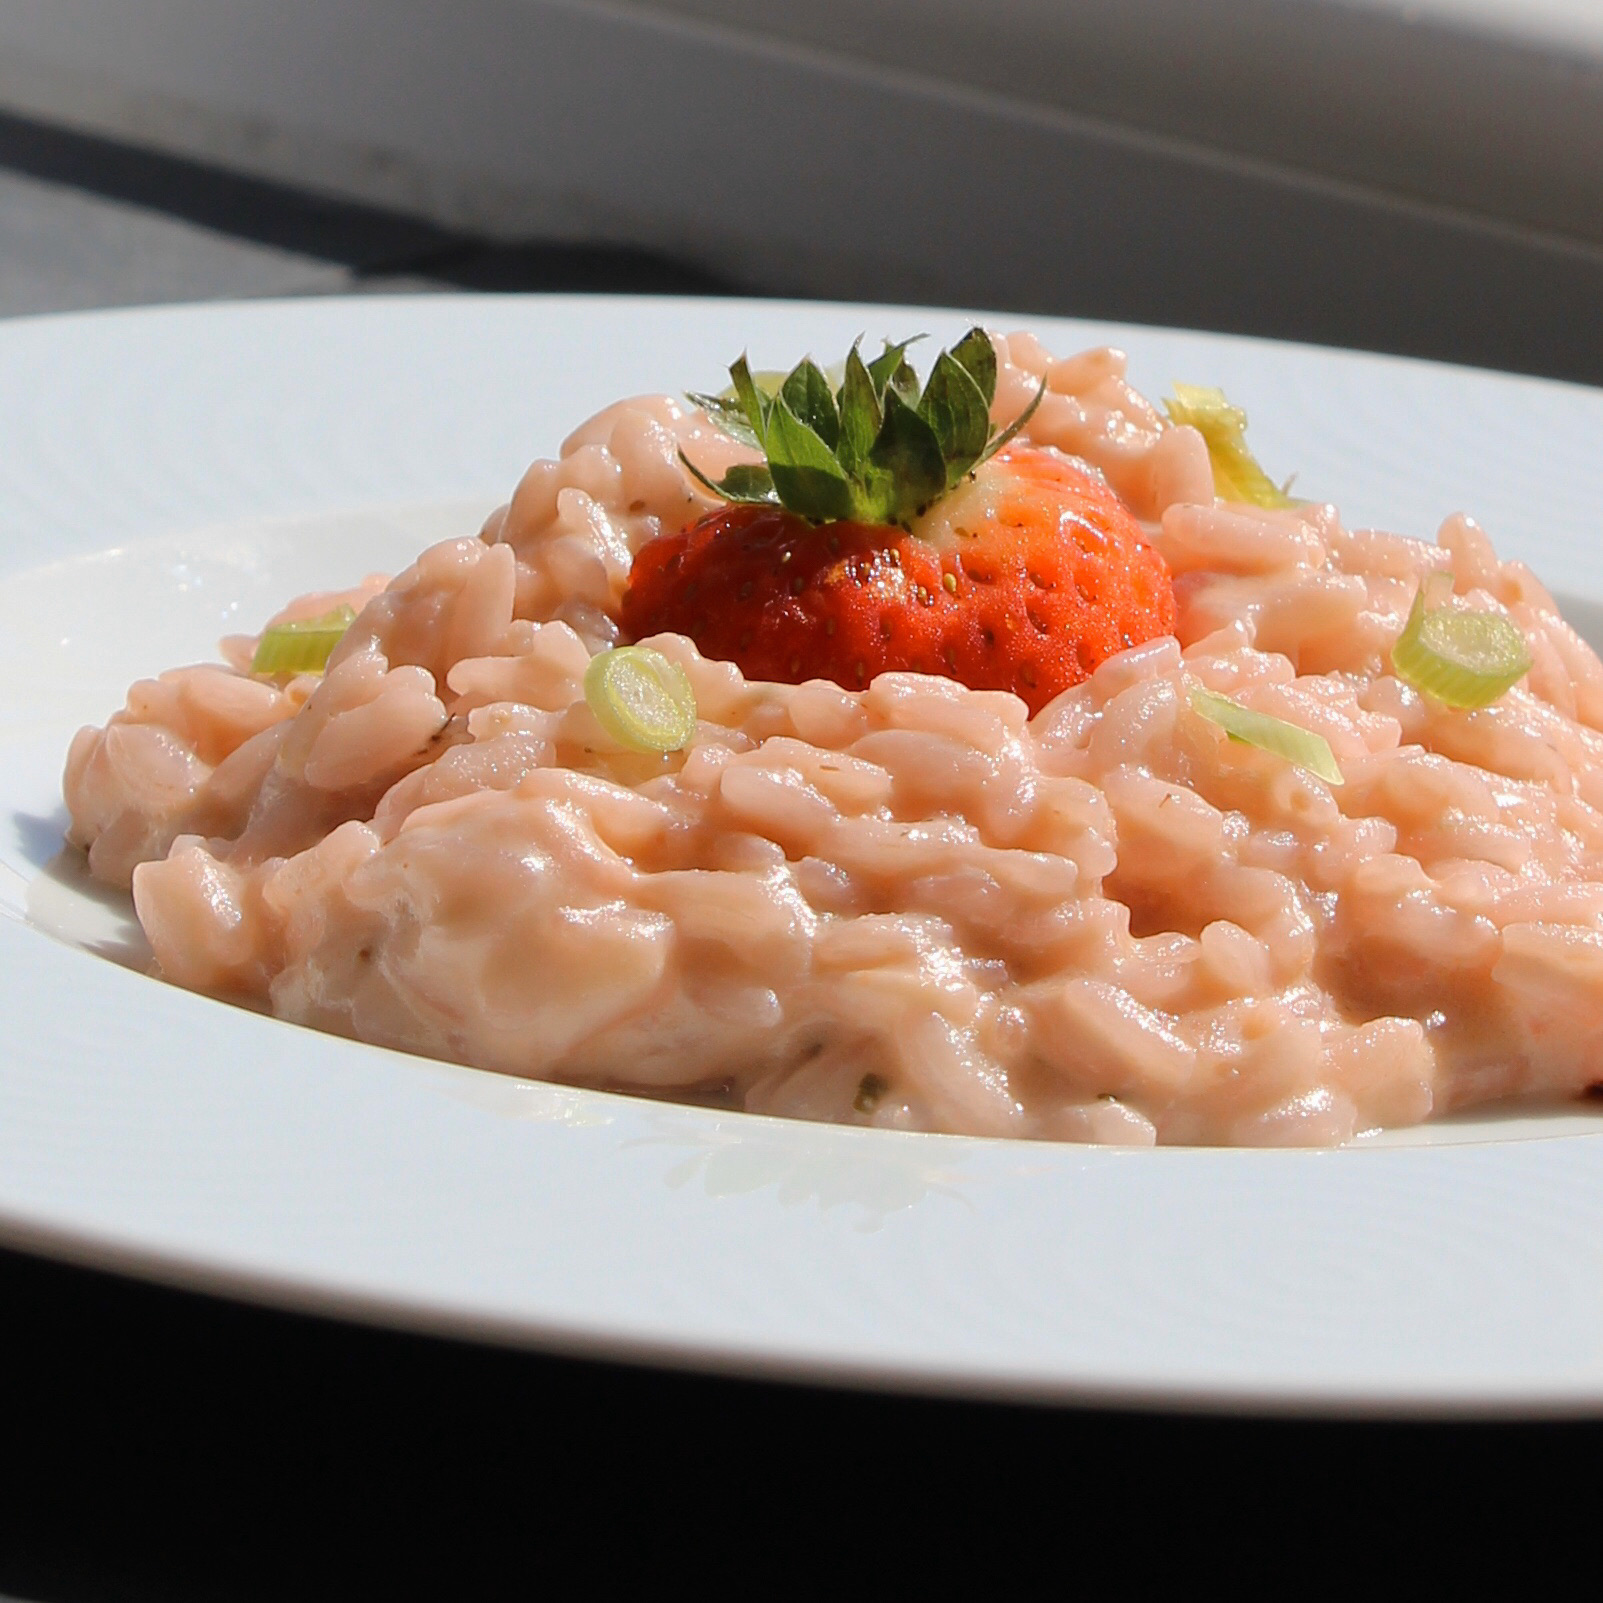 Allrecipes Allstar Buckwheat Queen has created what must be the world's most romantic-sounding risotto recipe. This recipe marries strawberries with balsamic in a creamy risotto embellished with prosecco and goat cheese. The recipe is made for two, perfect for a romantic evening.